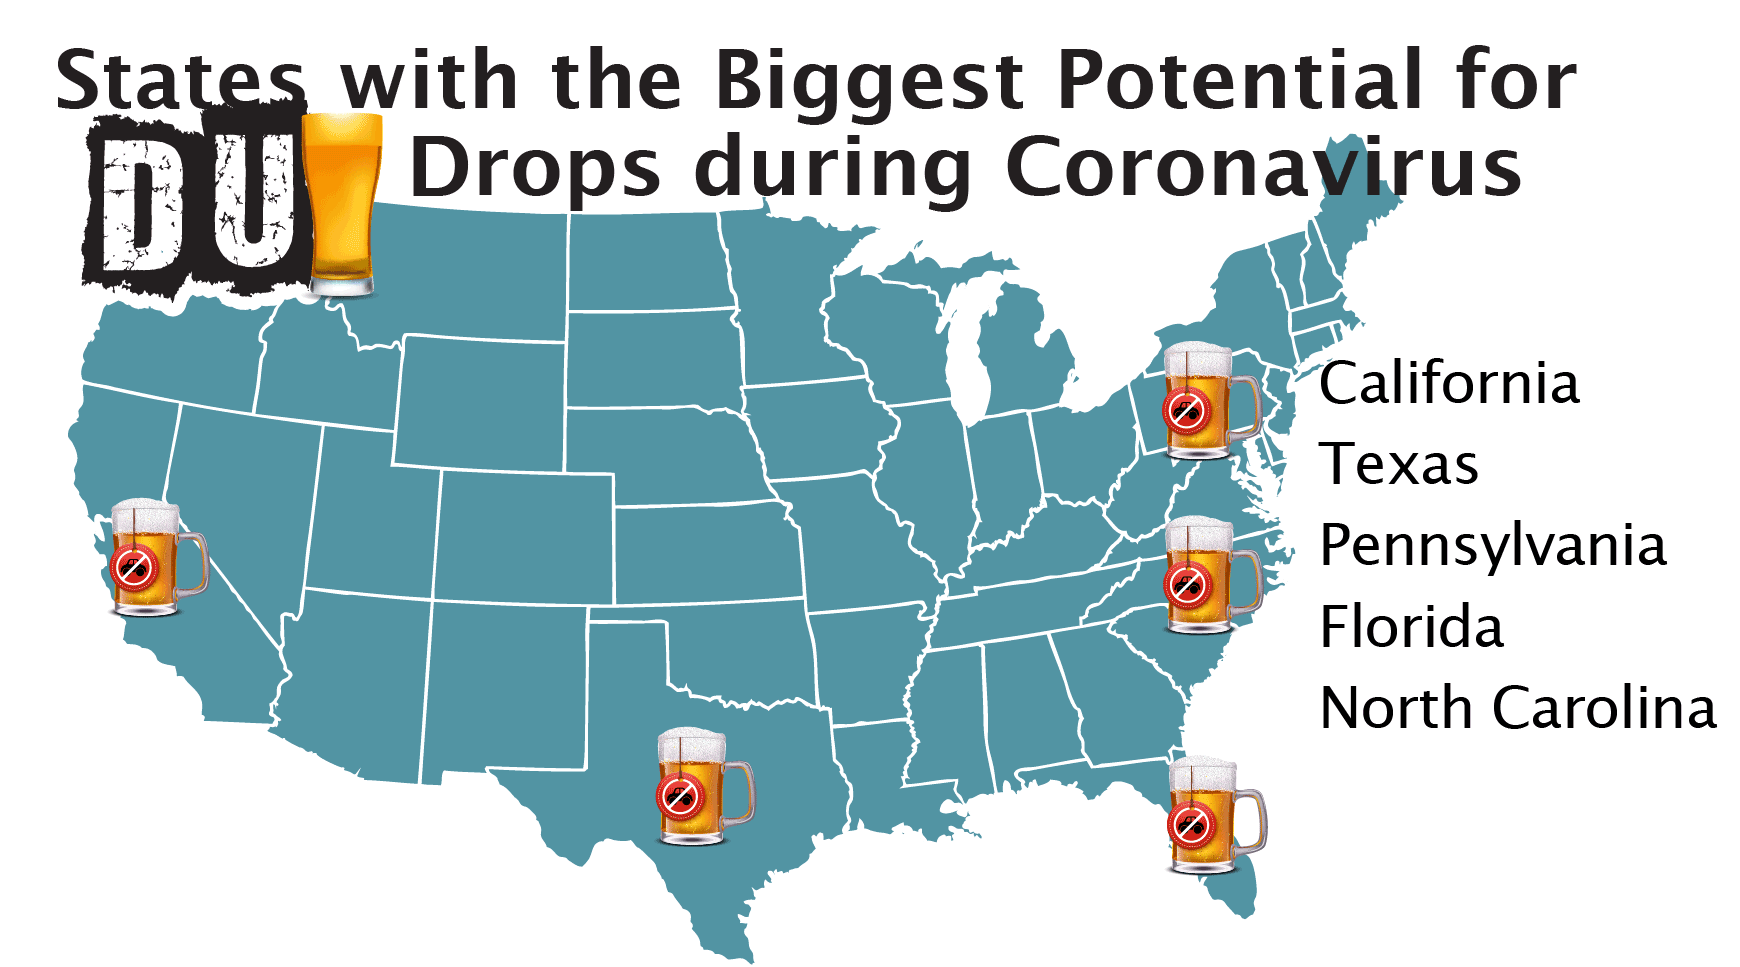 Which States Have the Biggest Chance of a Drop Coronavirus Pandemic